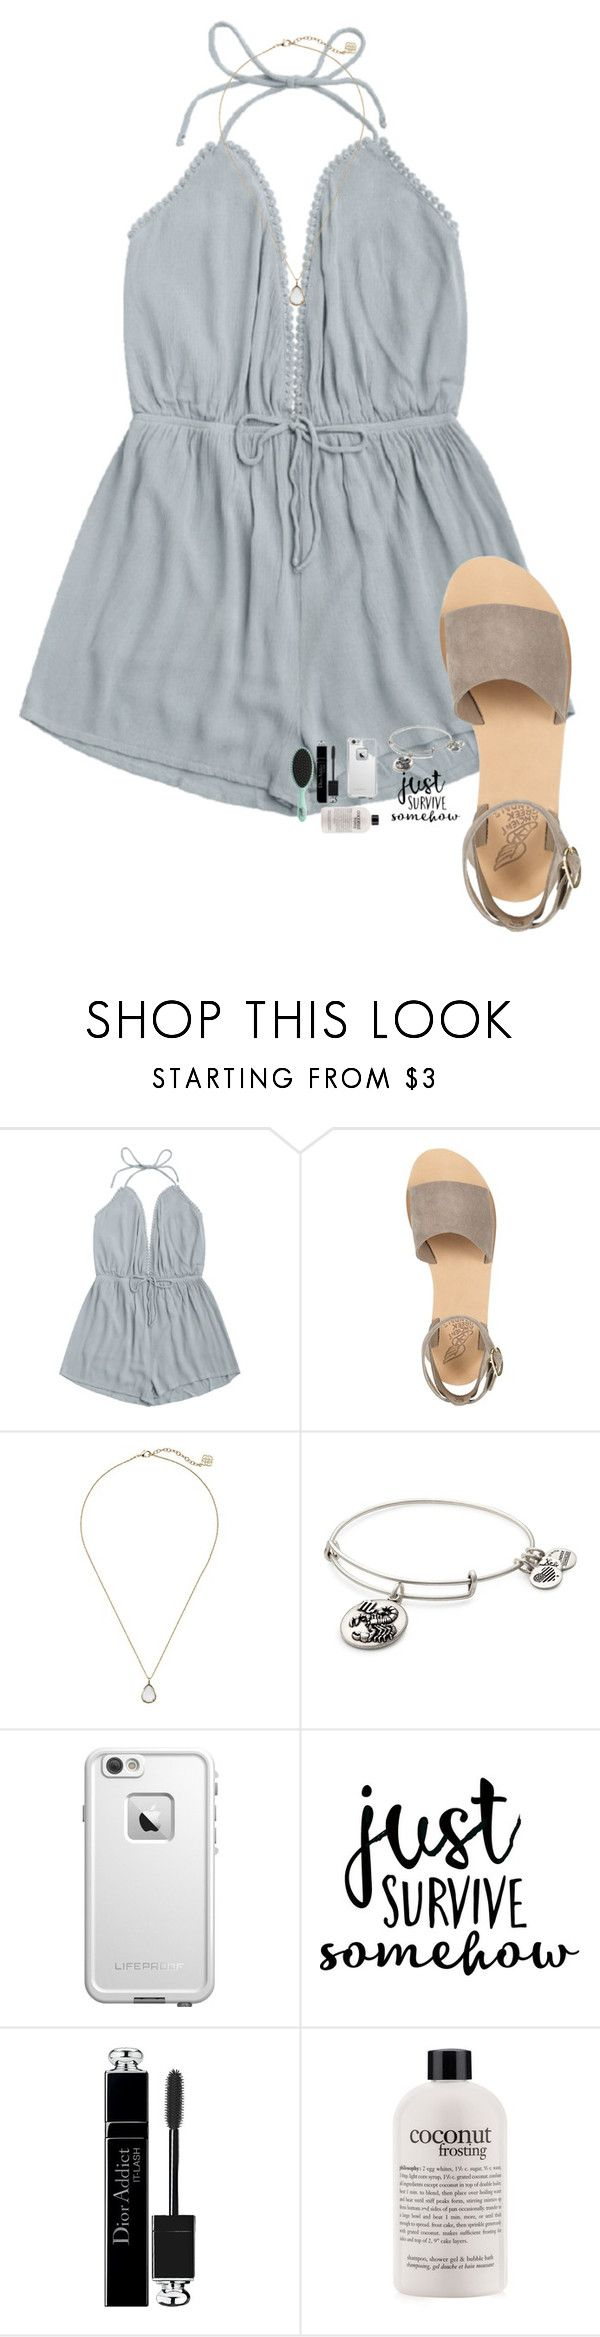 """Day in the d!"" by kolbee24 ❤ liked on Polyvore featuring beauty, Ancient Greek Sandals, Kendra Scott, Alex and Ani, LifeProof, Christian Dior, philosophy and Topshop"